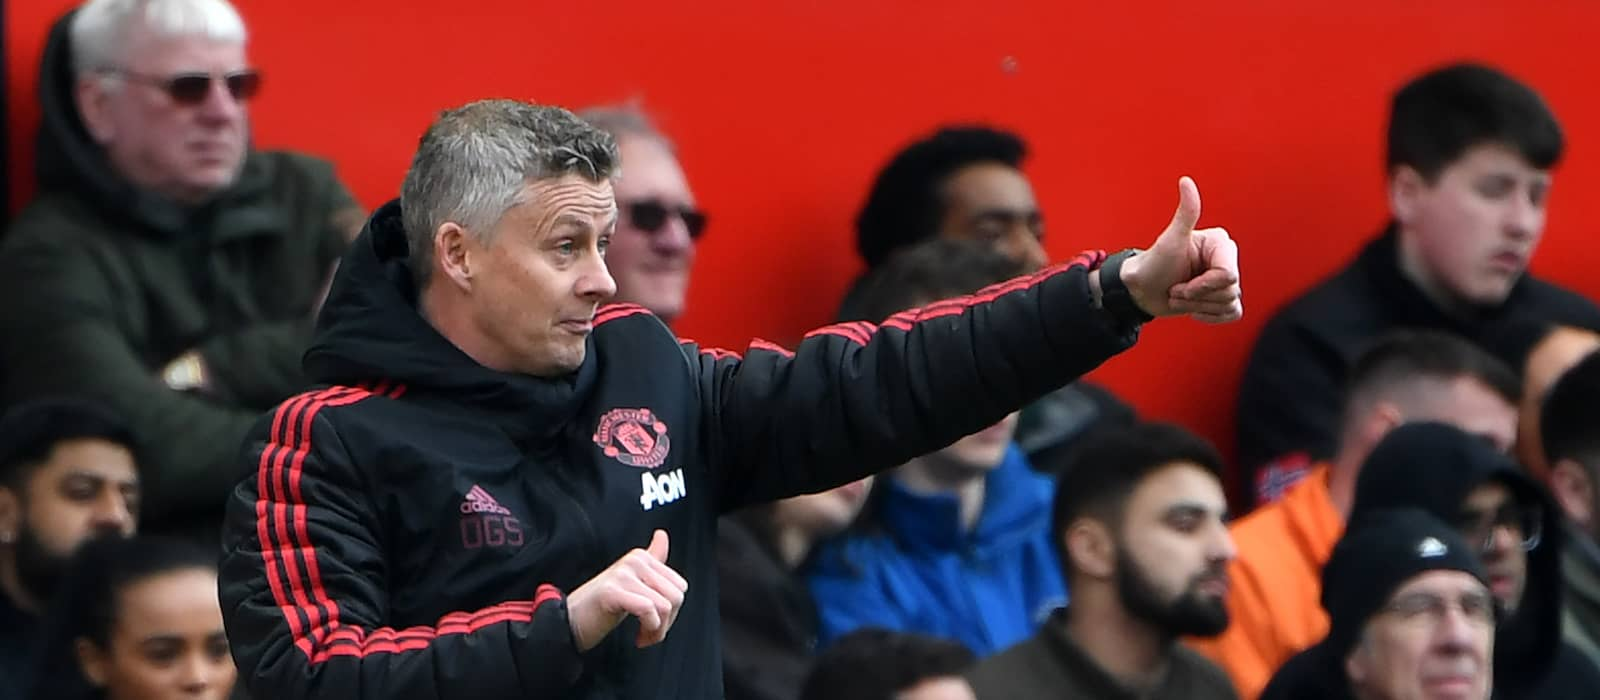 A rescuer, but not a leader – is Ole Gunnar Solskjaer the manager like Solskjaer the player?